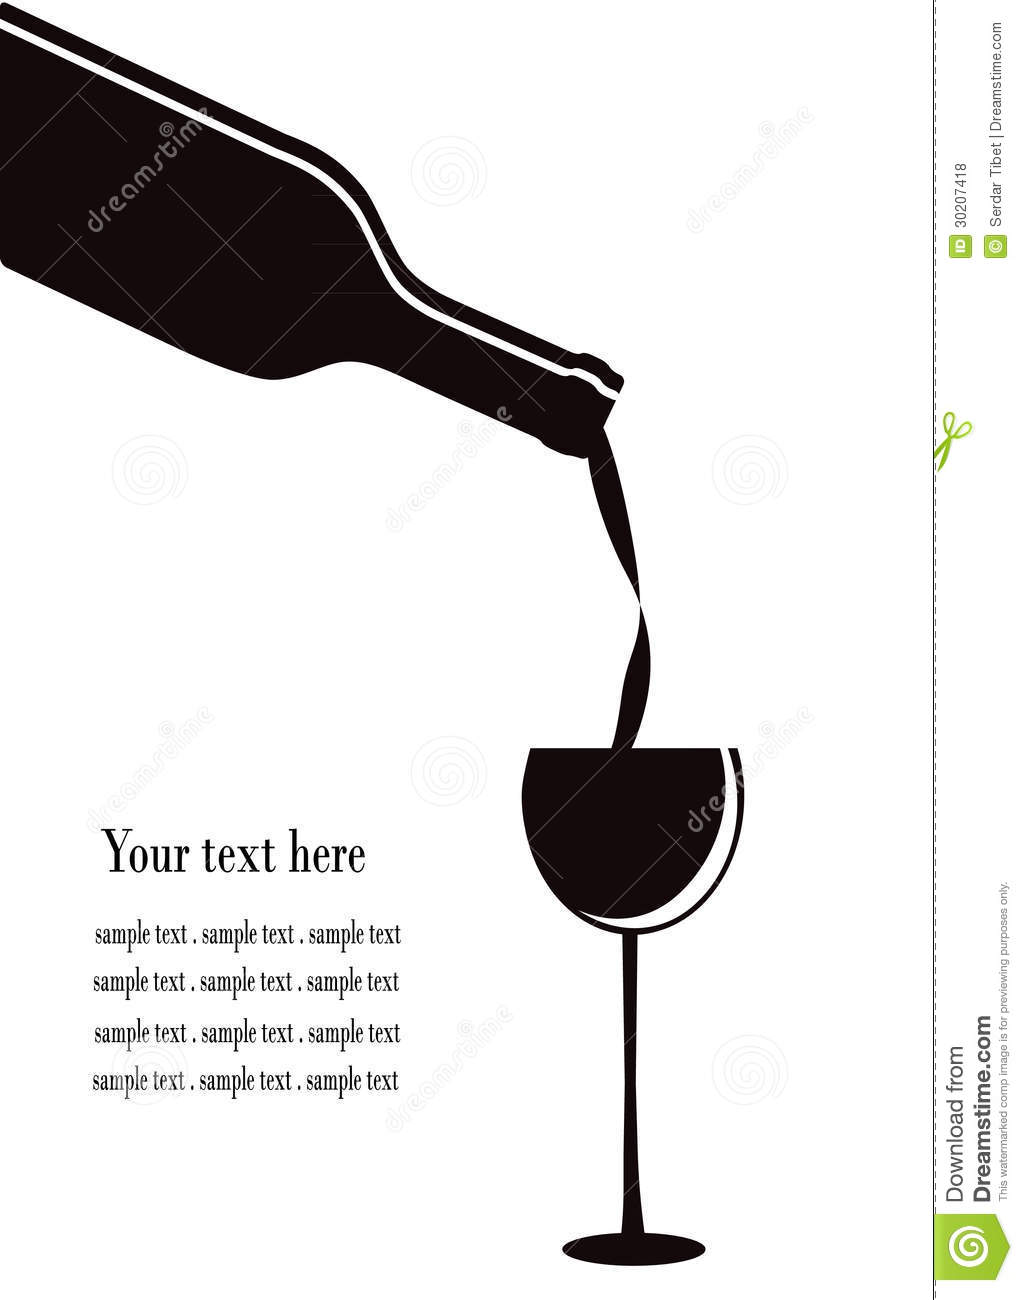 Wine Glass Royalty Free Stock Photos - Image: 30207418